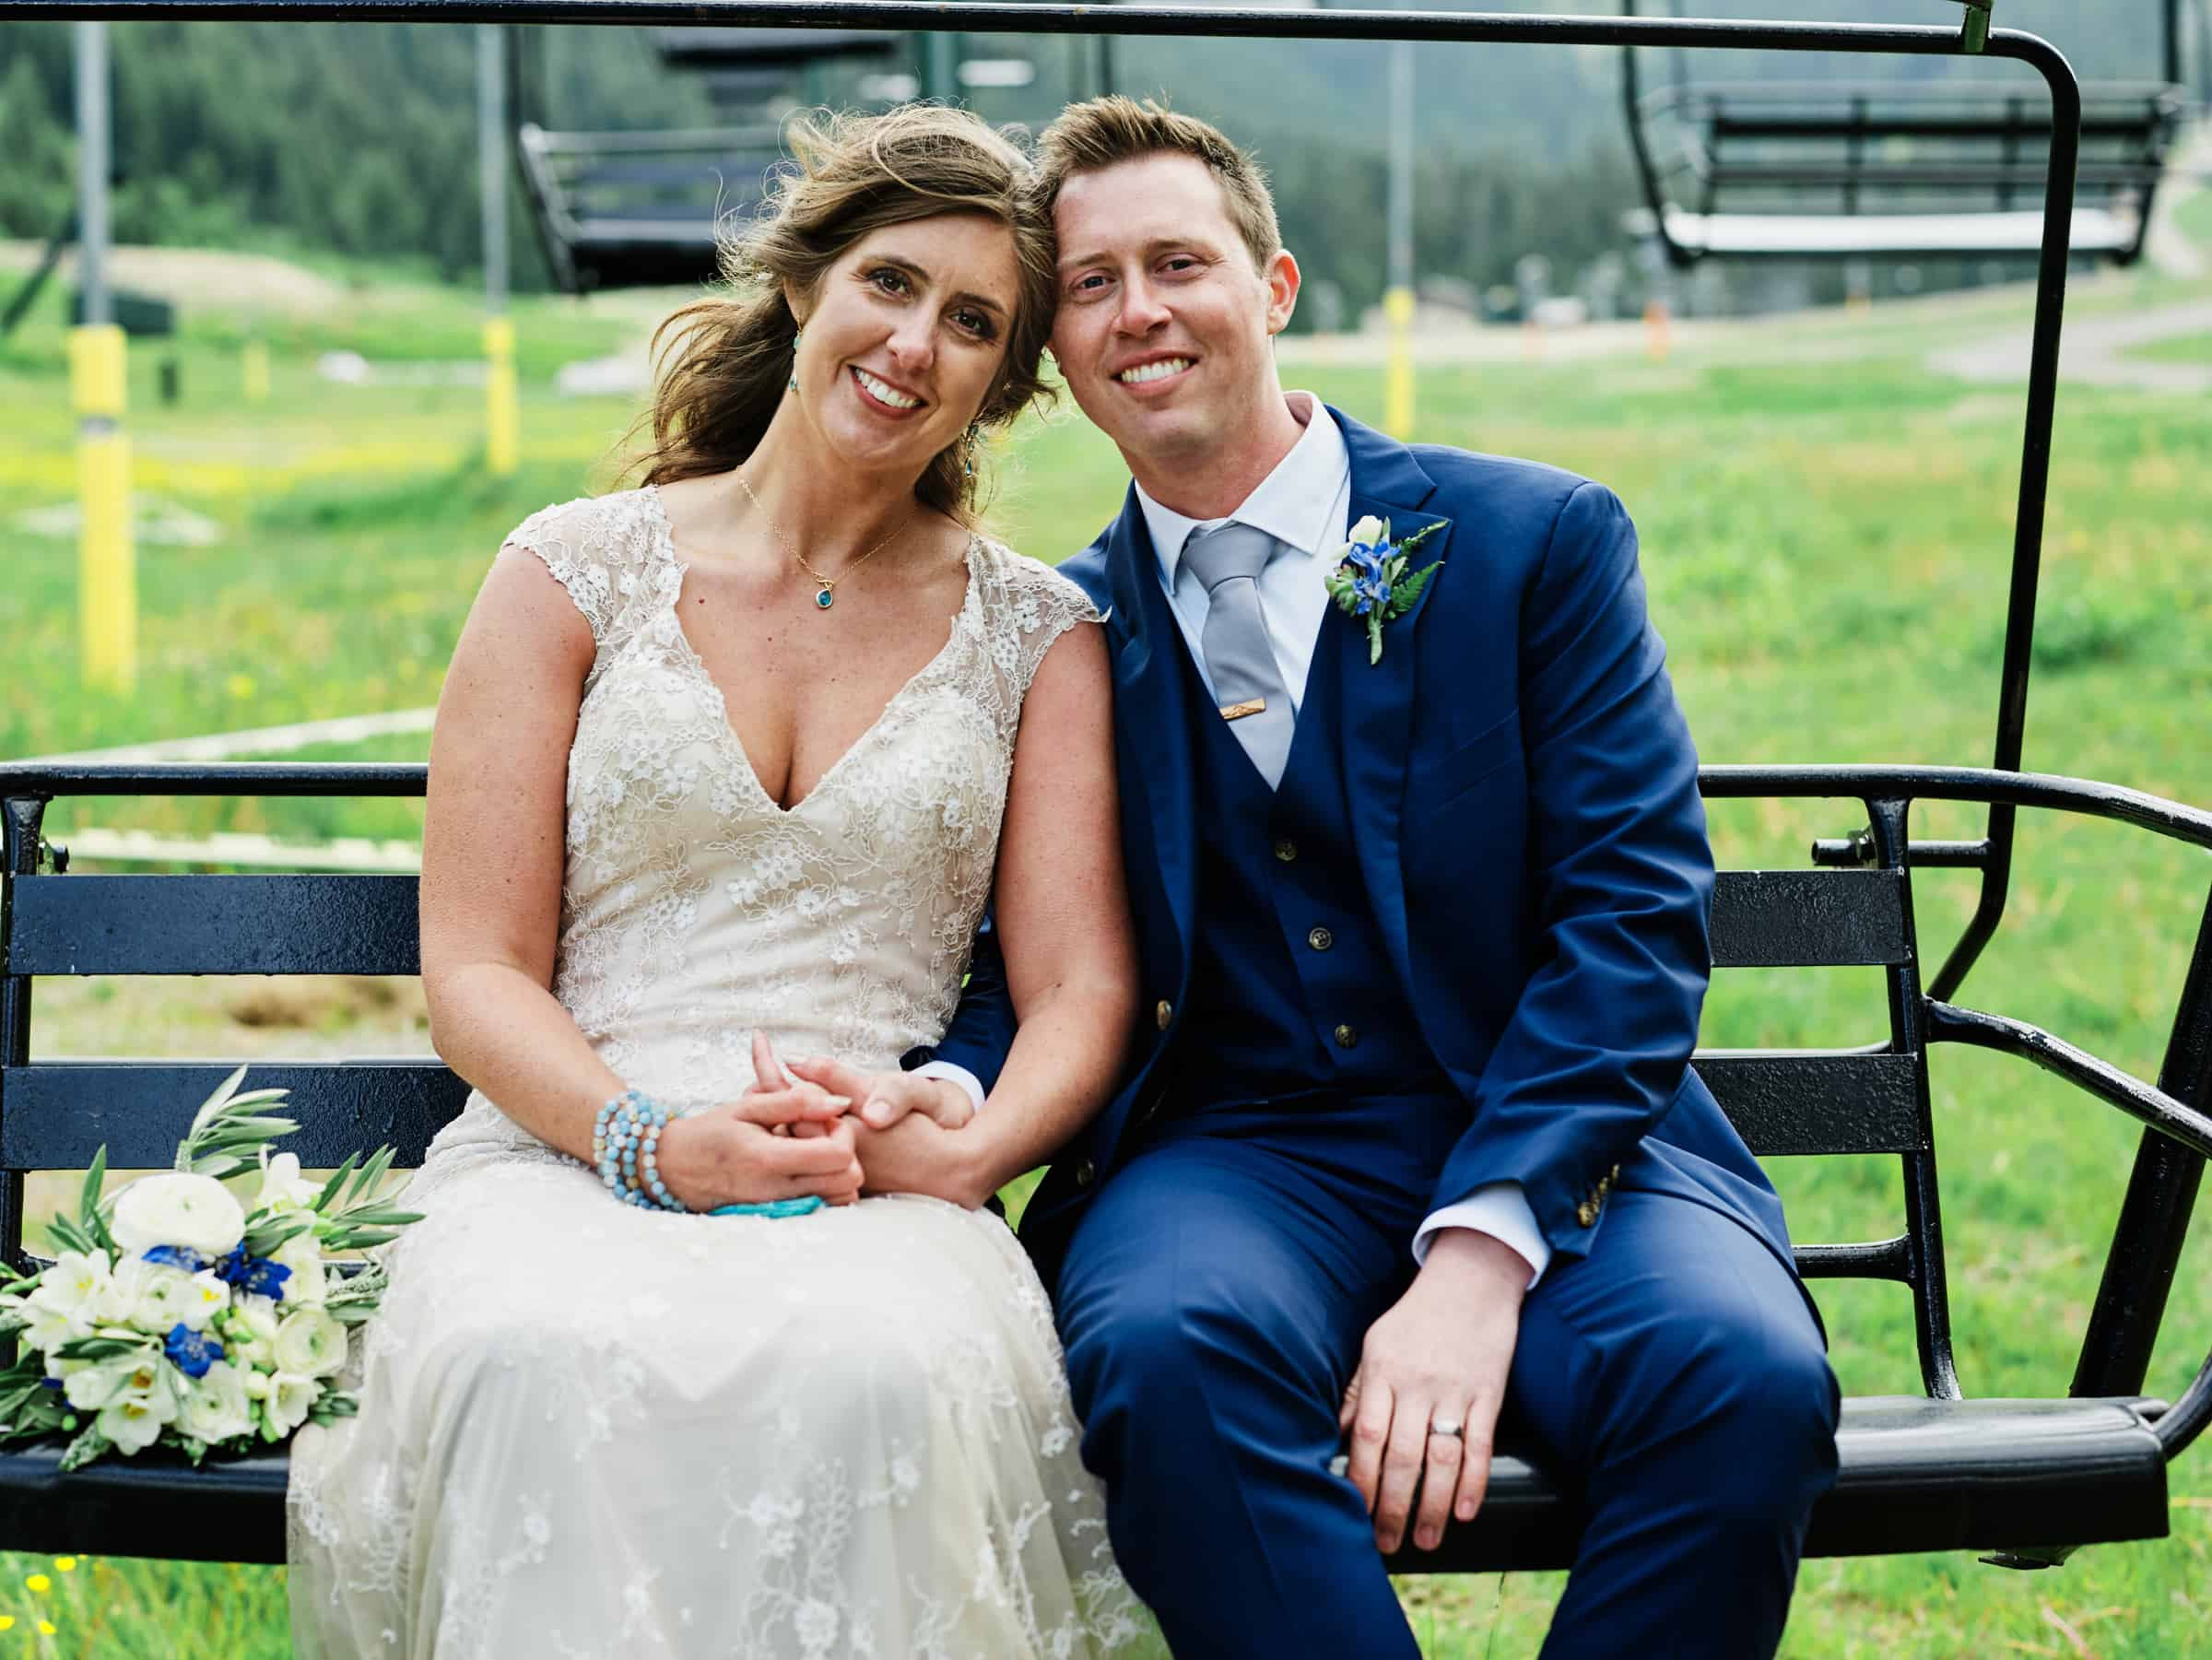 chair lift wedding photo